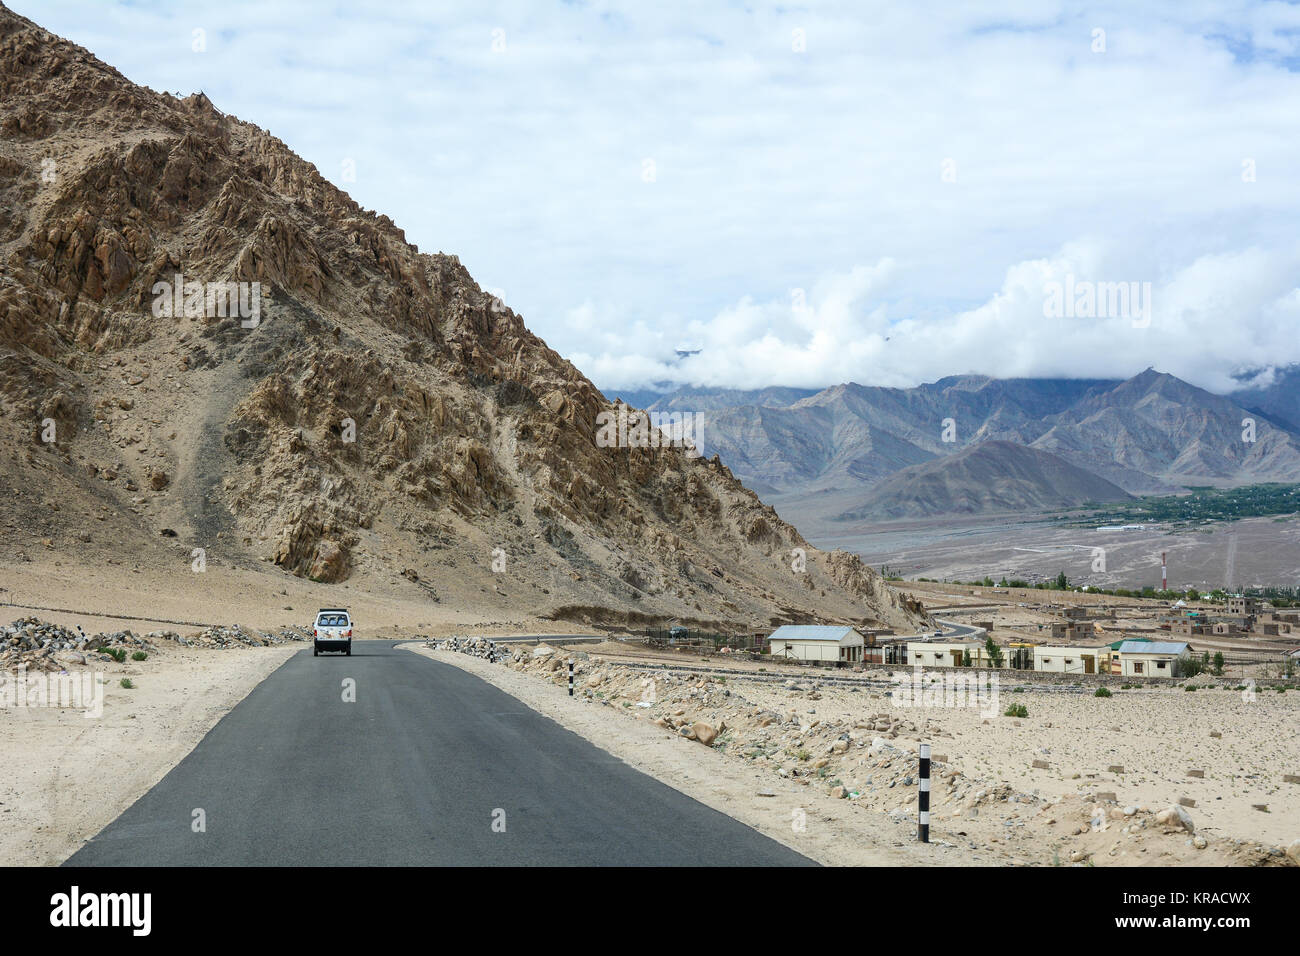 Mountain road in Ladakh, India. Ladakh is one of the most sparsely populated regions in Jammu and Kashmir. - Stock Image